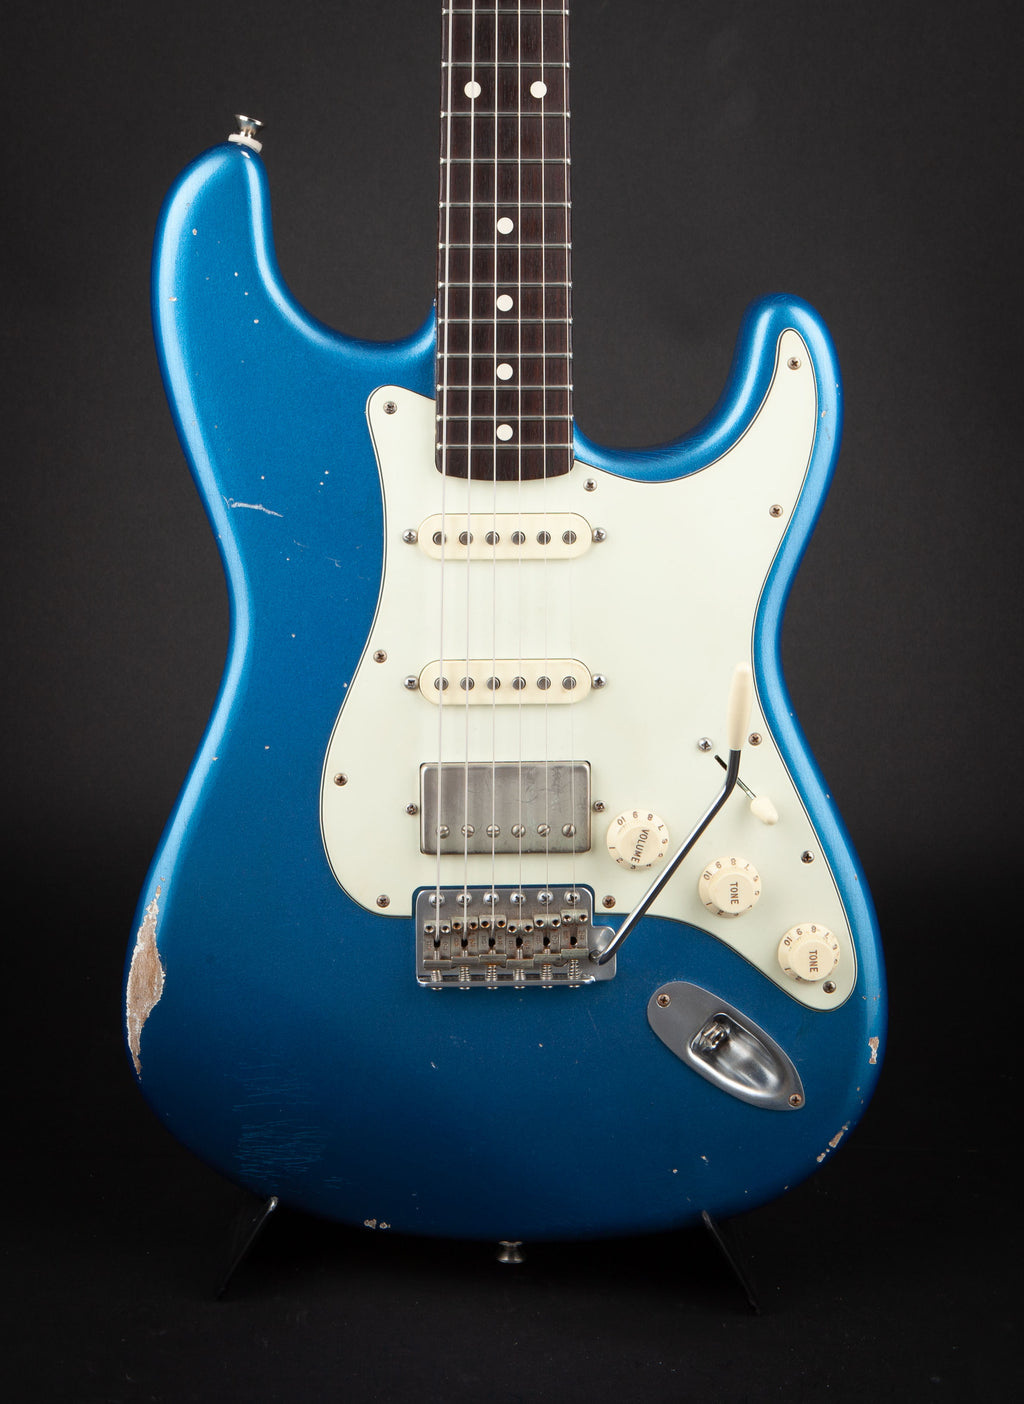 Smitty Guitars: Classic S Lake Placid Blue with Mastergrade Roasted Birdseye Maple Neck